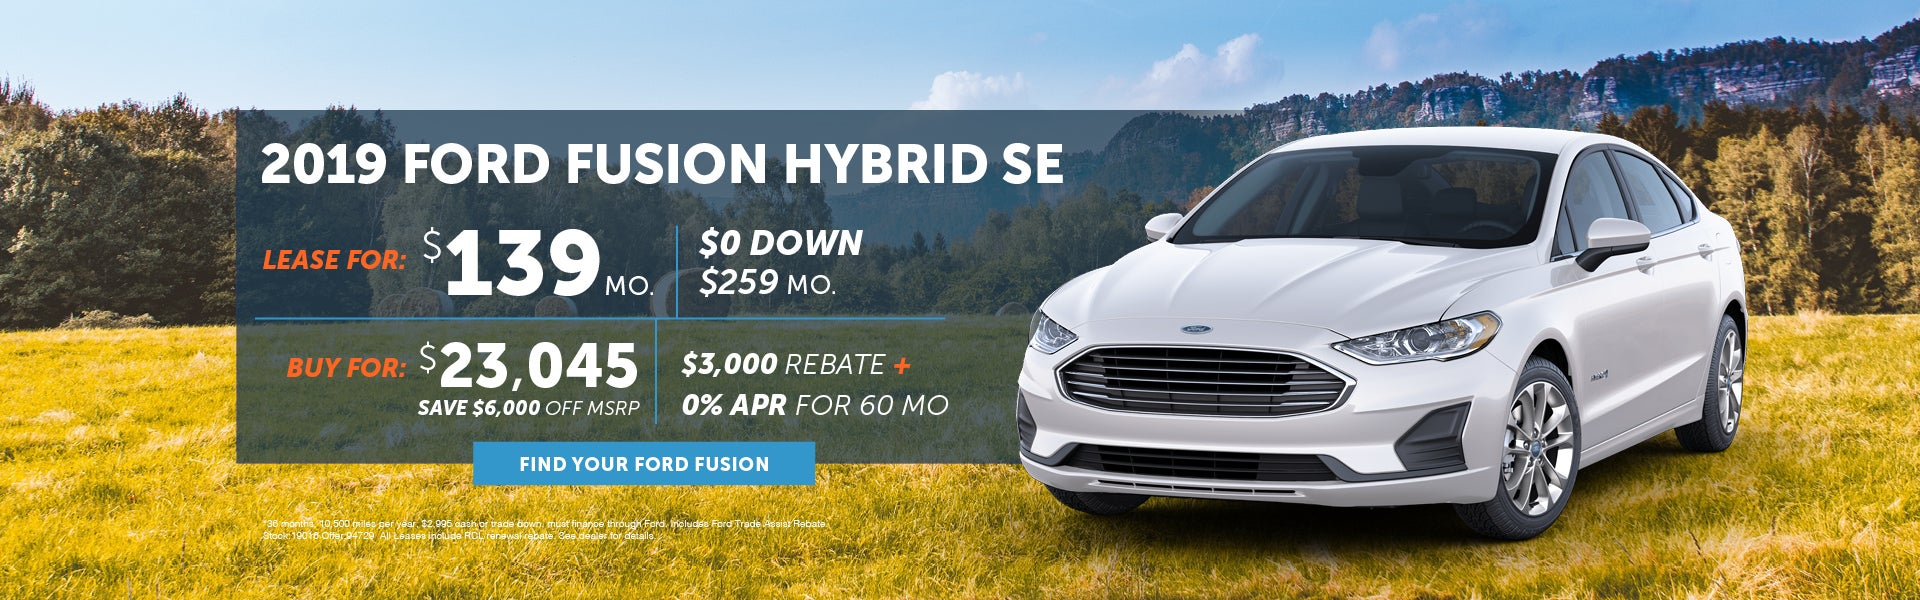 2019 Ford Fusion Hybrid Special